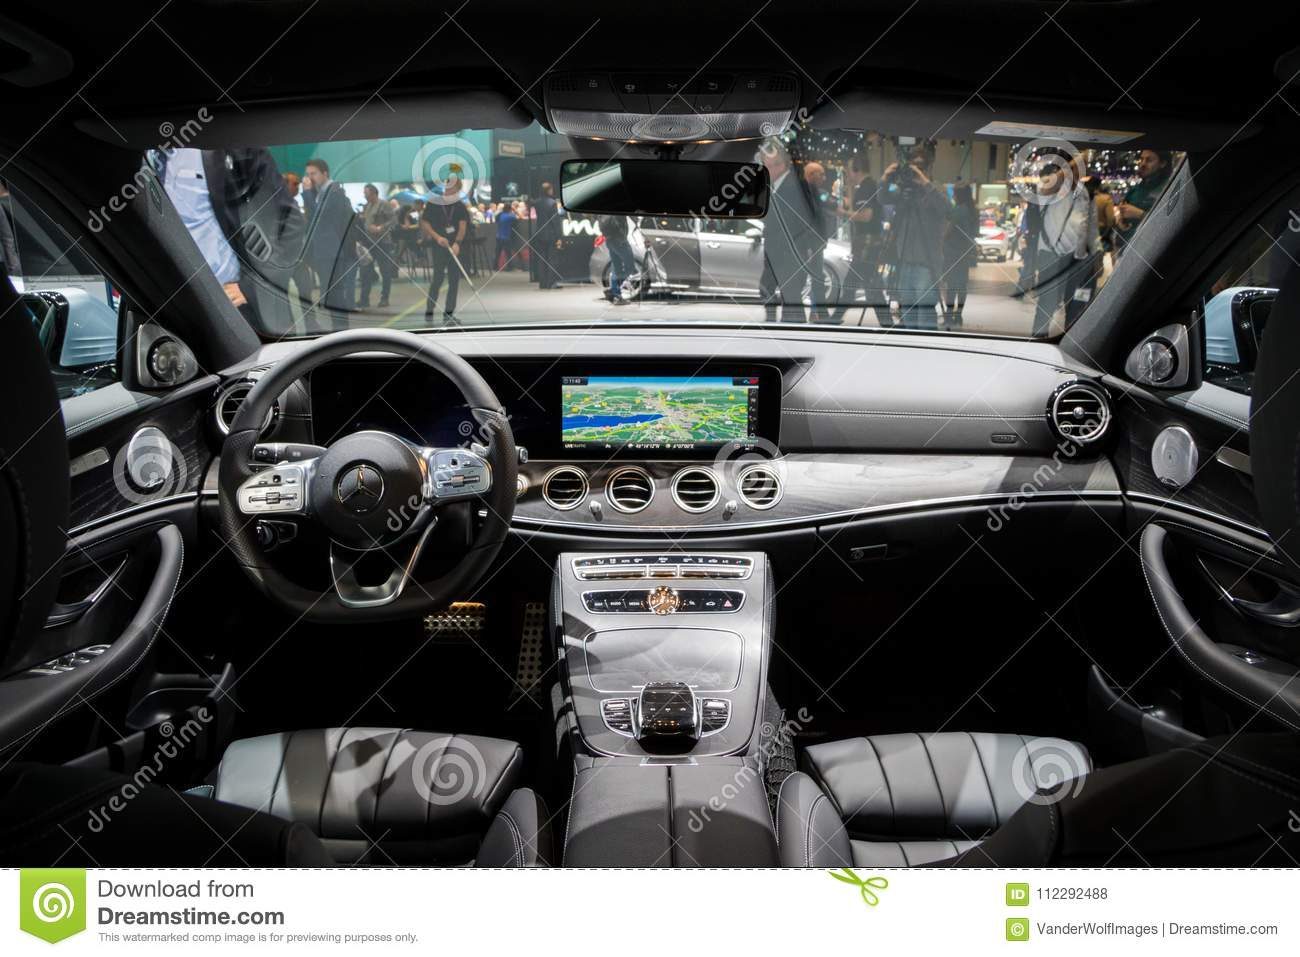 Mercedes Benz Interior >> Interior Mercedes Benz E300 Diesel Hybrid Car Editorial